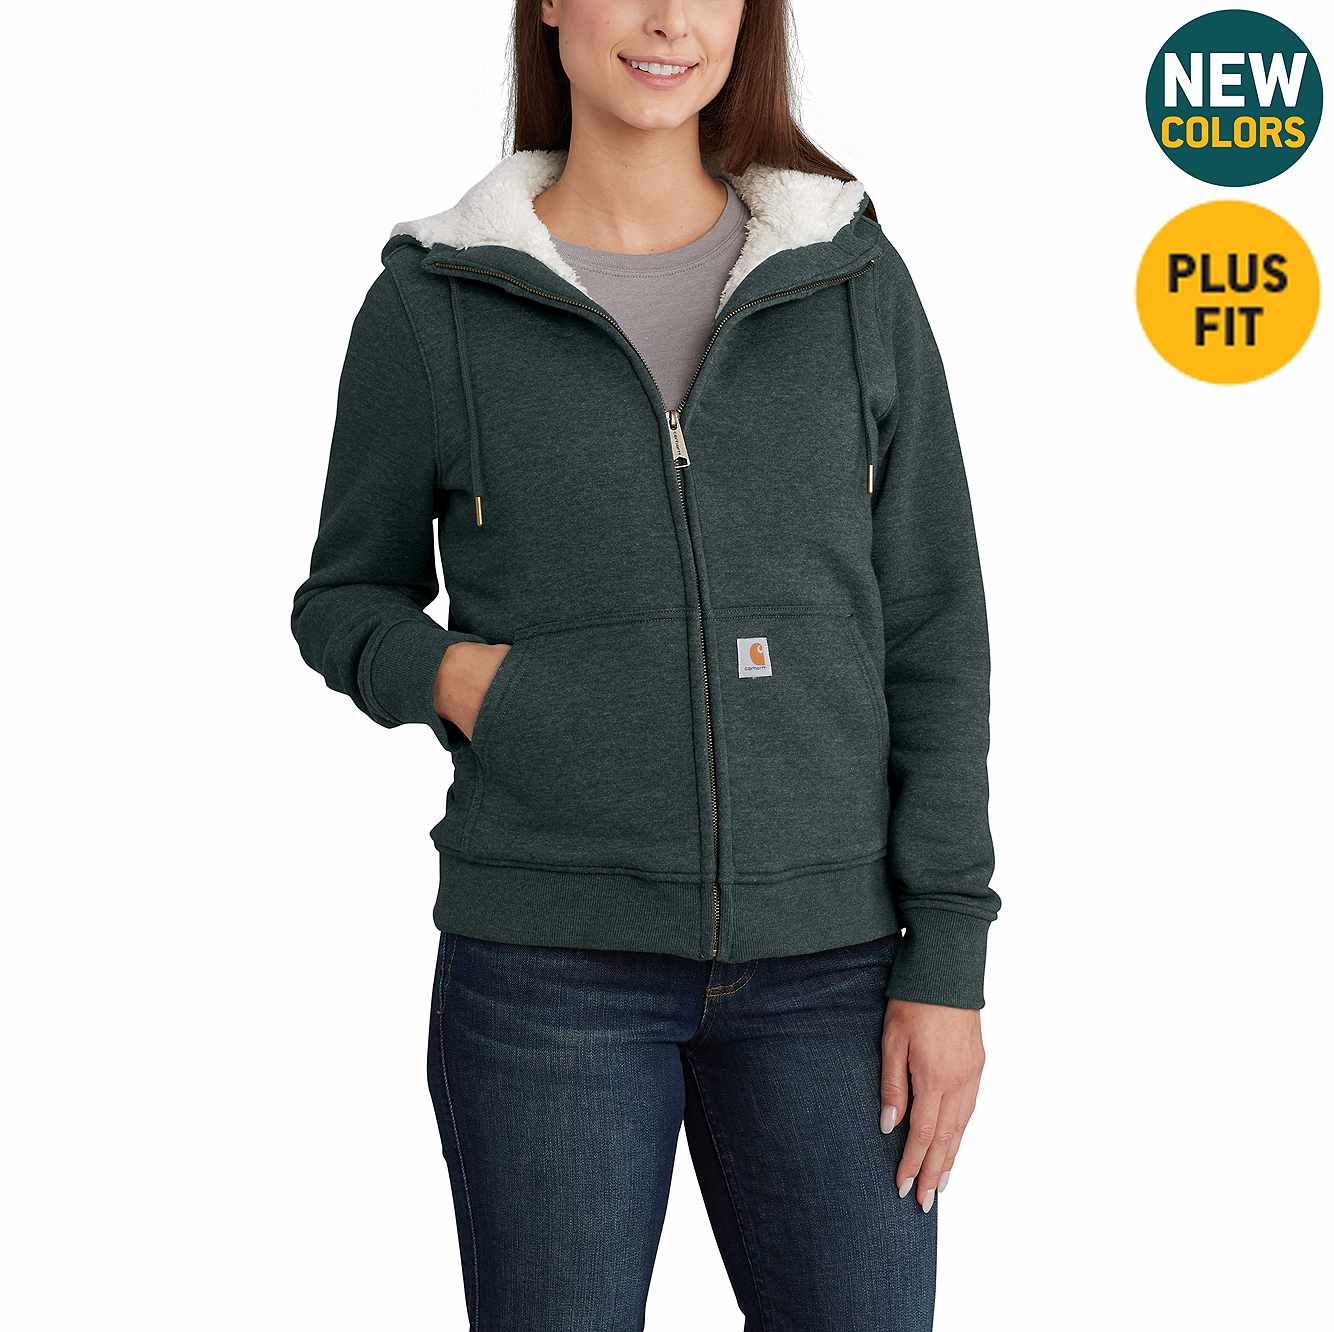 Picture of Clarksburg Sherpa-Lined Hoodie in Fog Green Heather